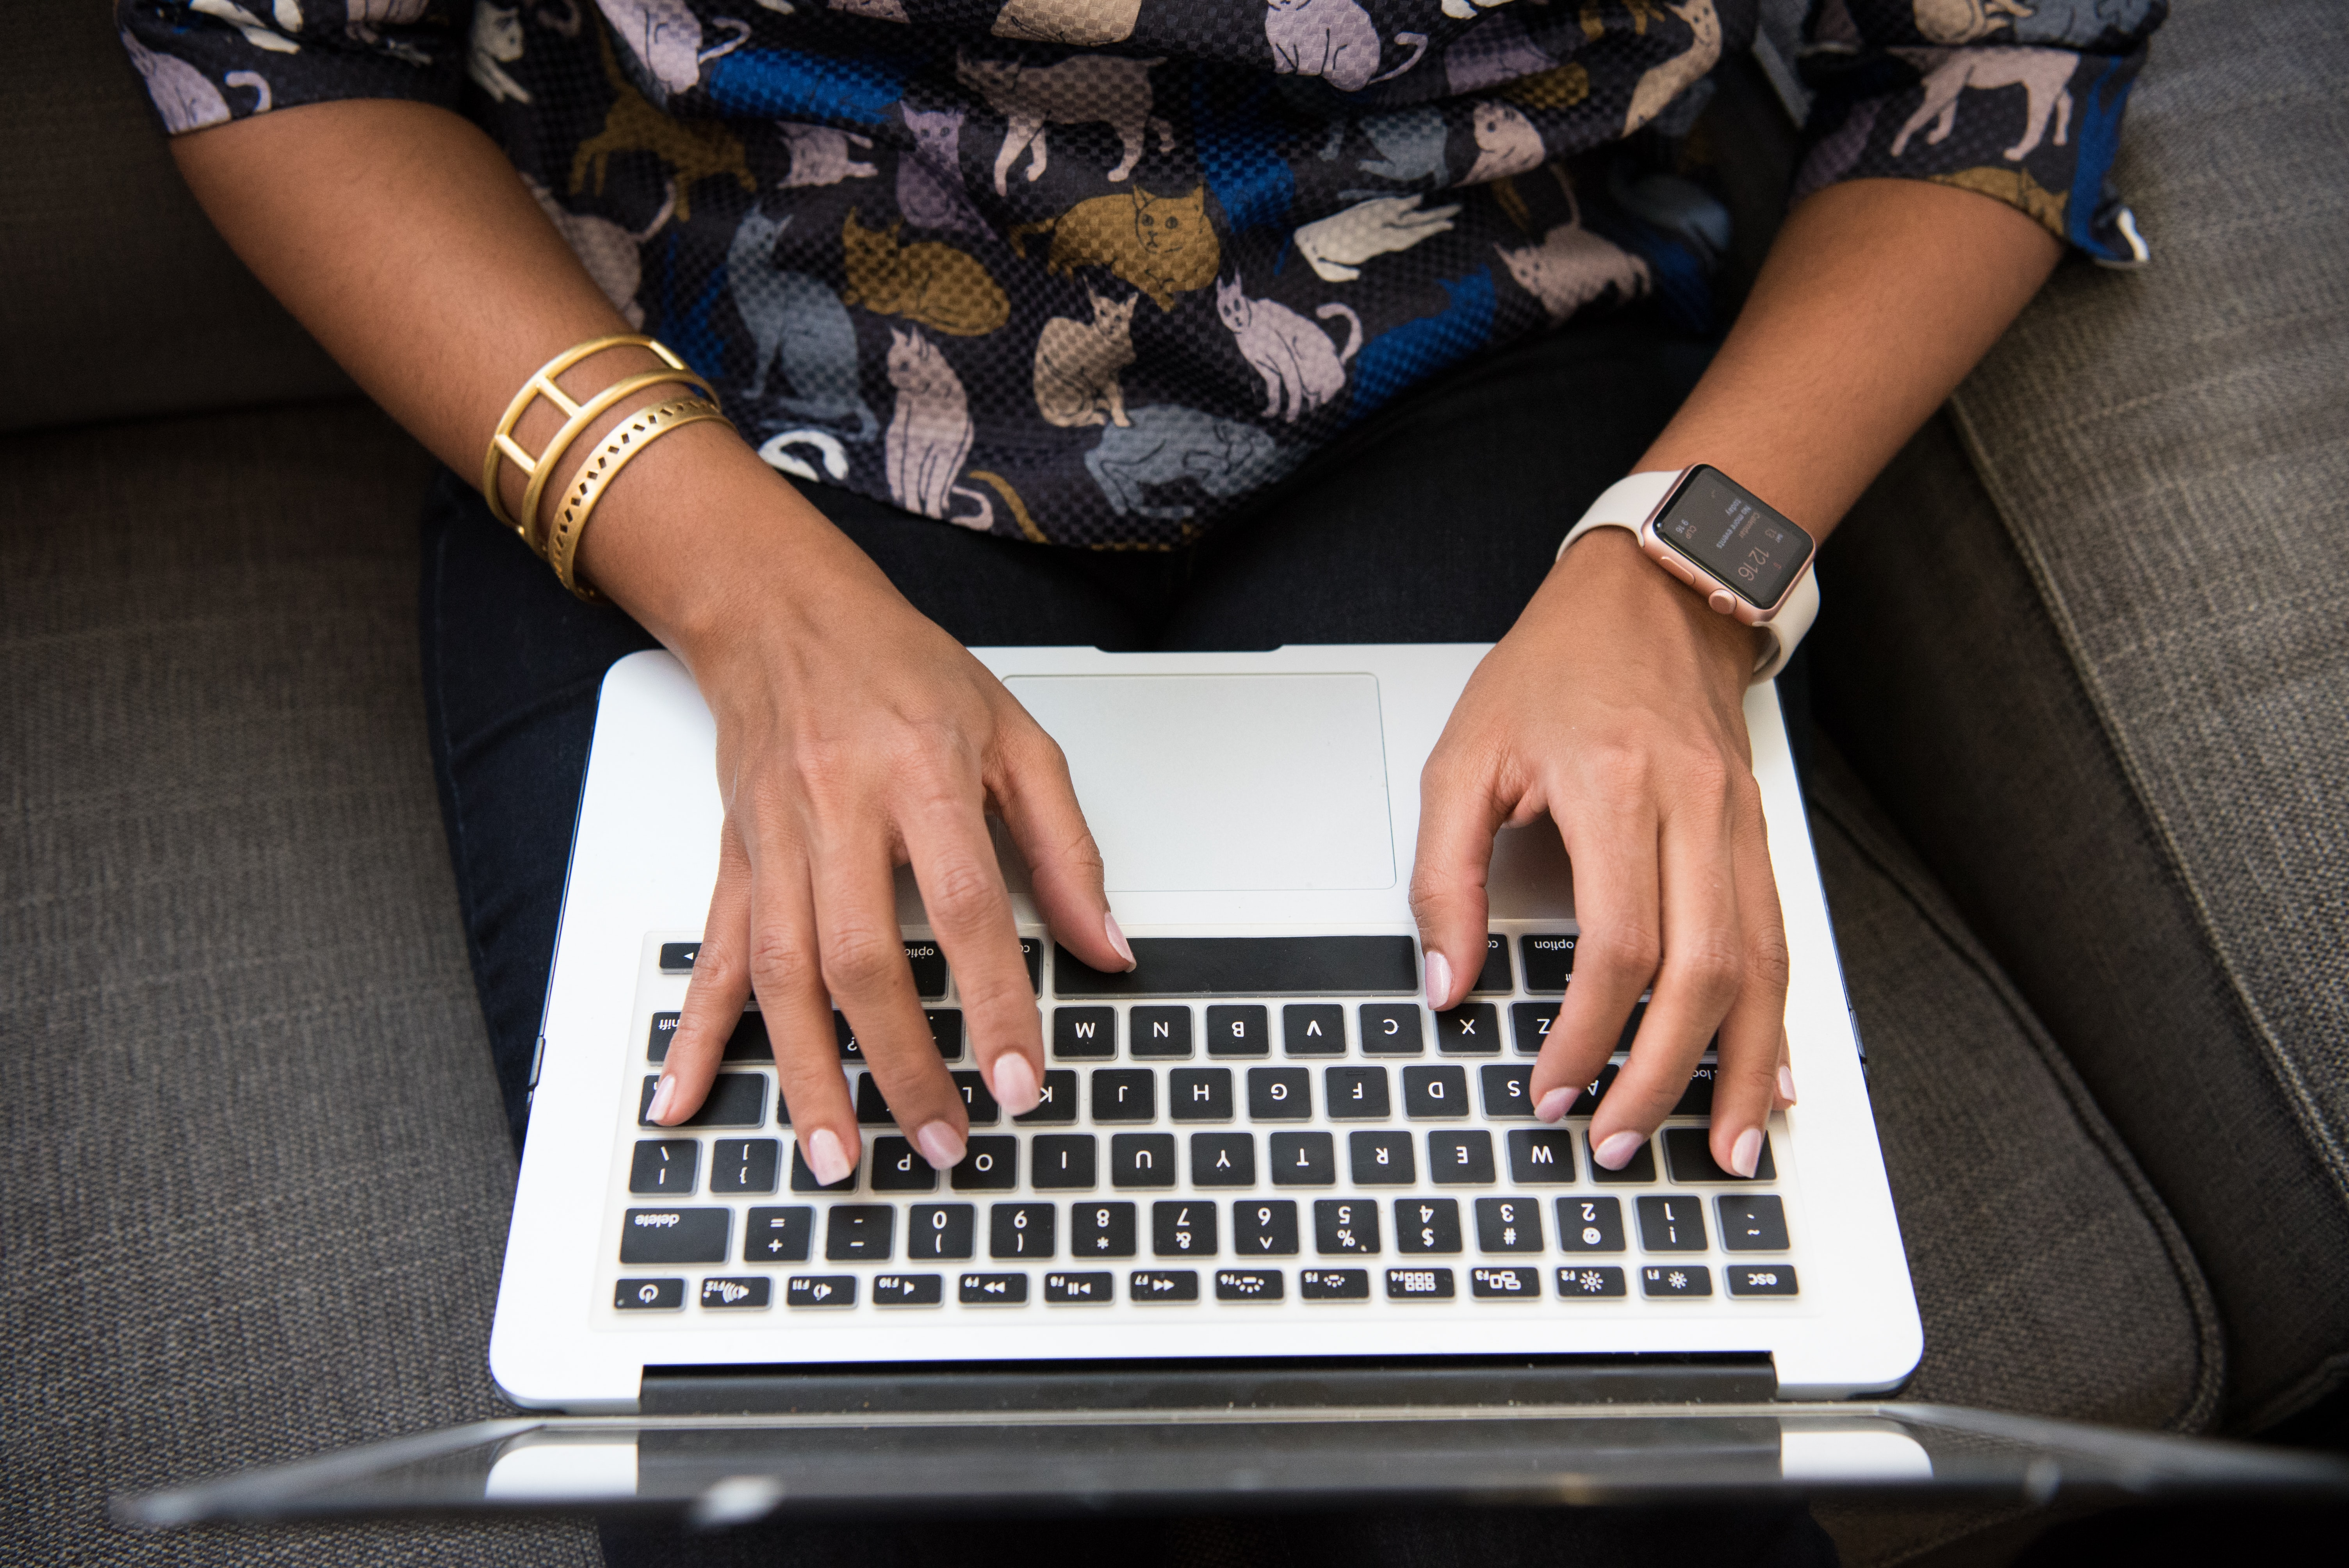 This person is typing on her/his laptop. He/she is working on a client's project, they wanted to add some features to their webpage, and use Java technology. This person works for a remote team and has a bracelet and a watch.